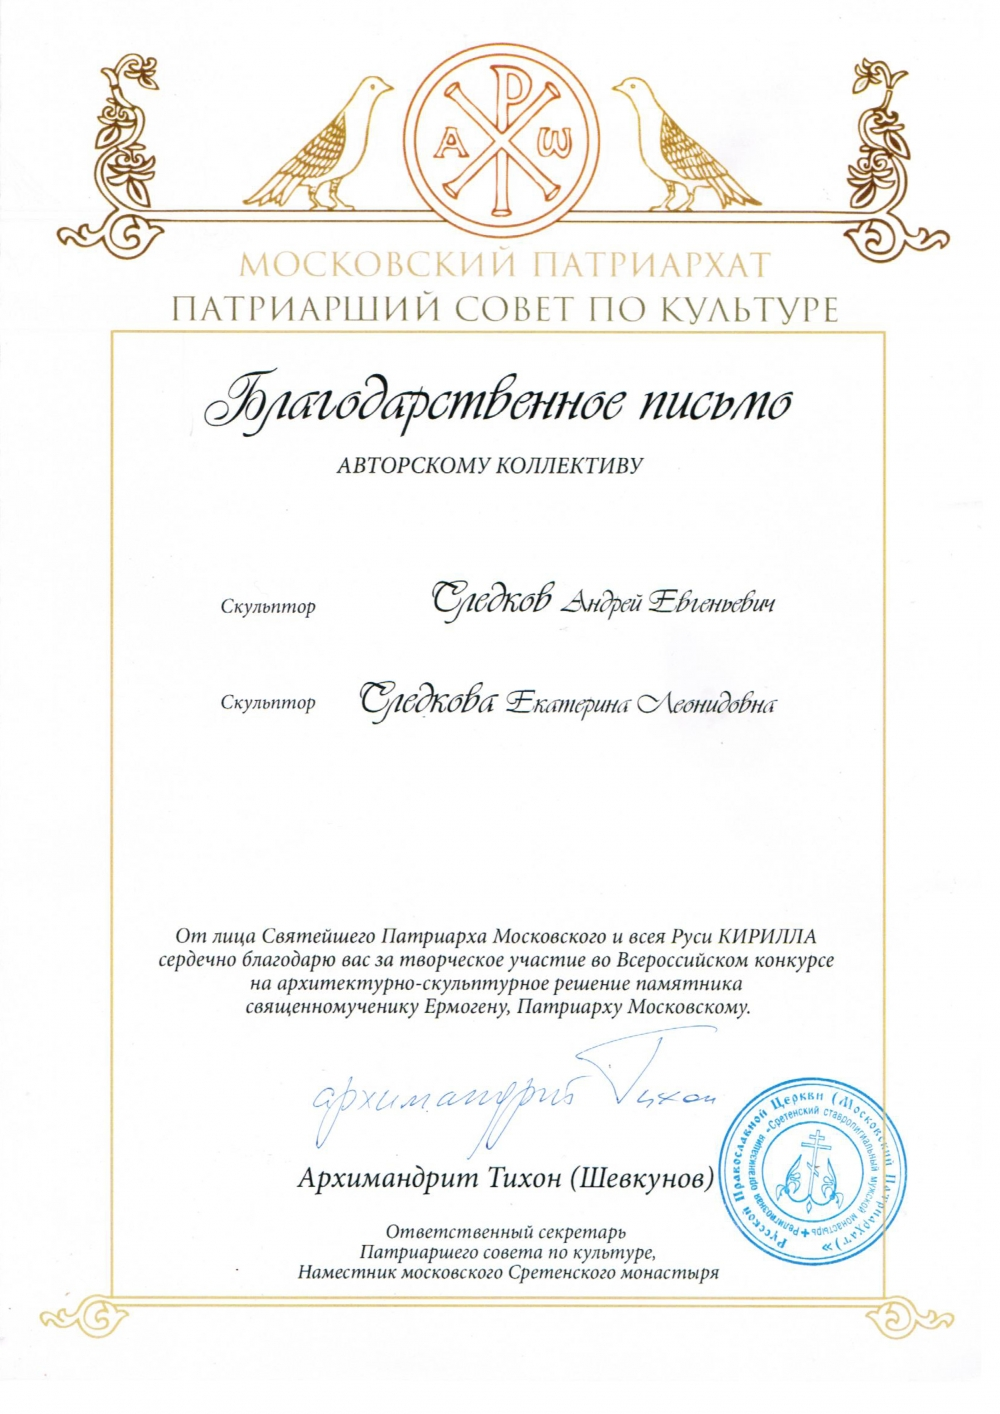 The letter of gratitude from Patriarch